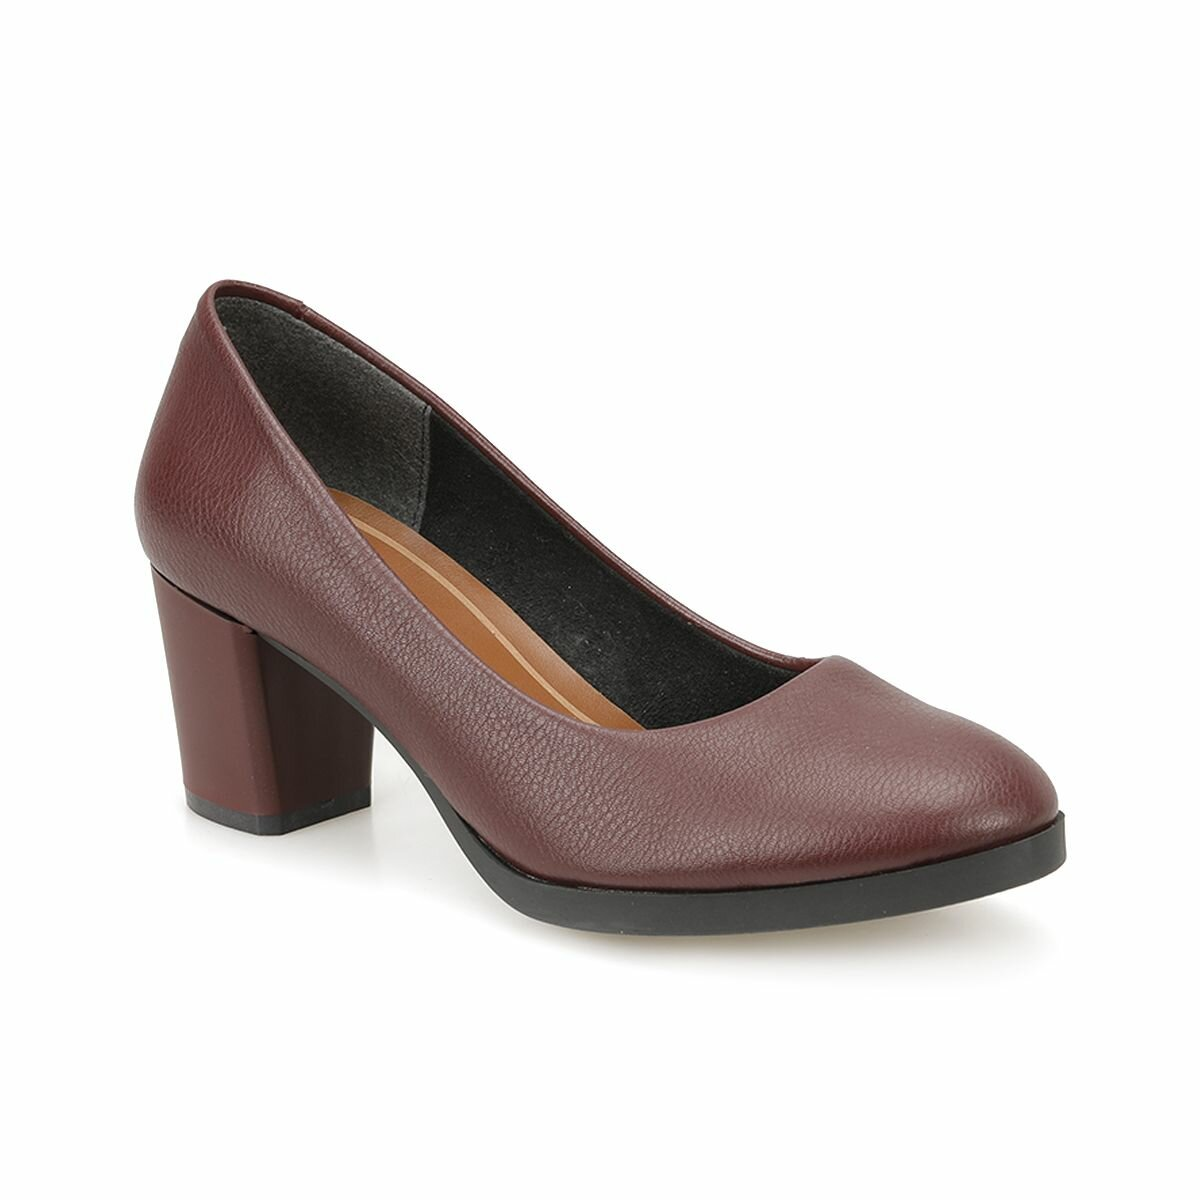 FLO 82.312121.Z Burgundy Women 'S Heels Shoes Polaris